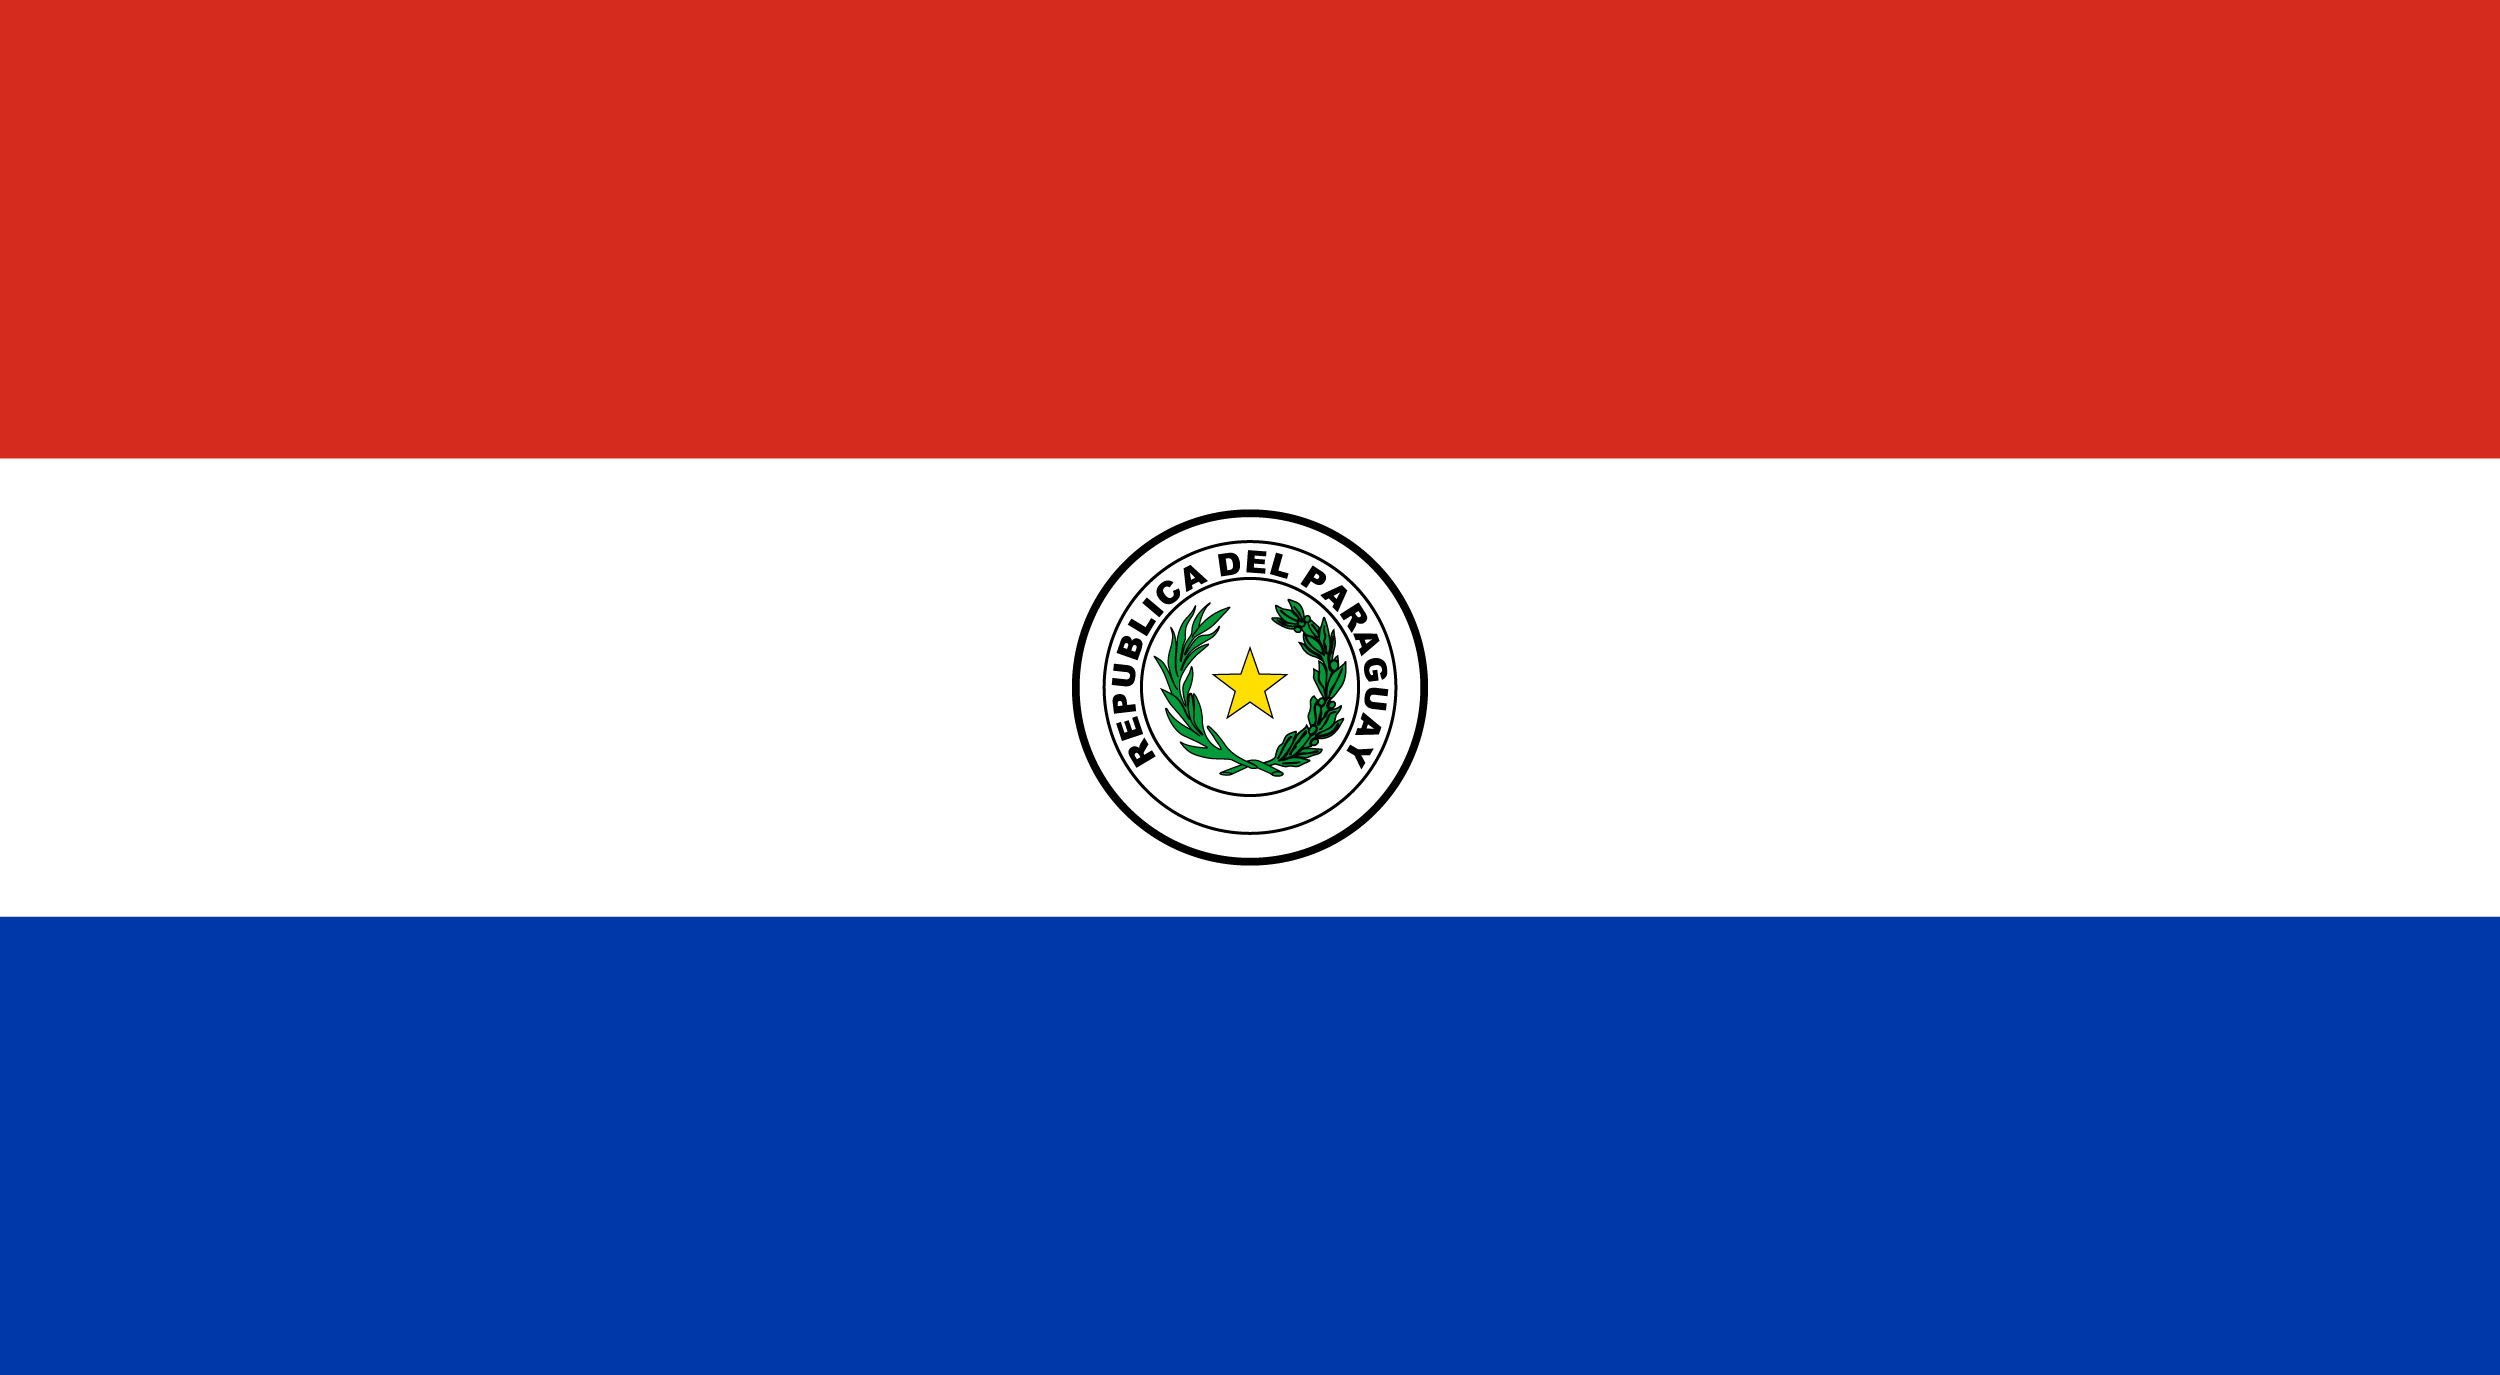 flag sticker of Paraguay